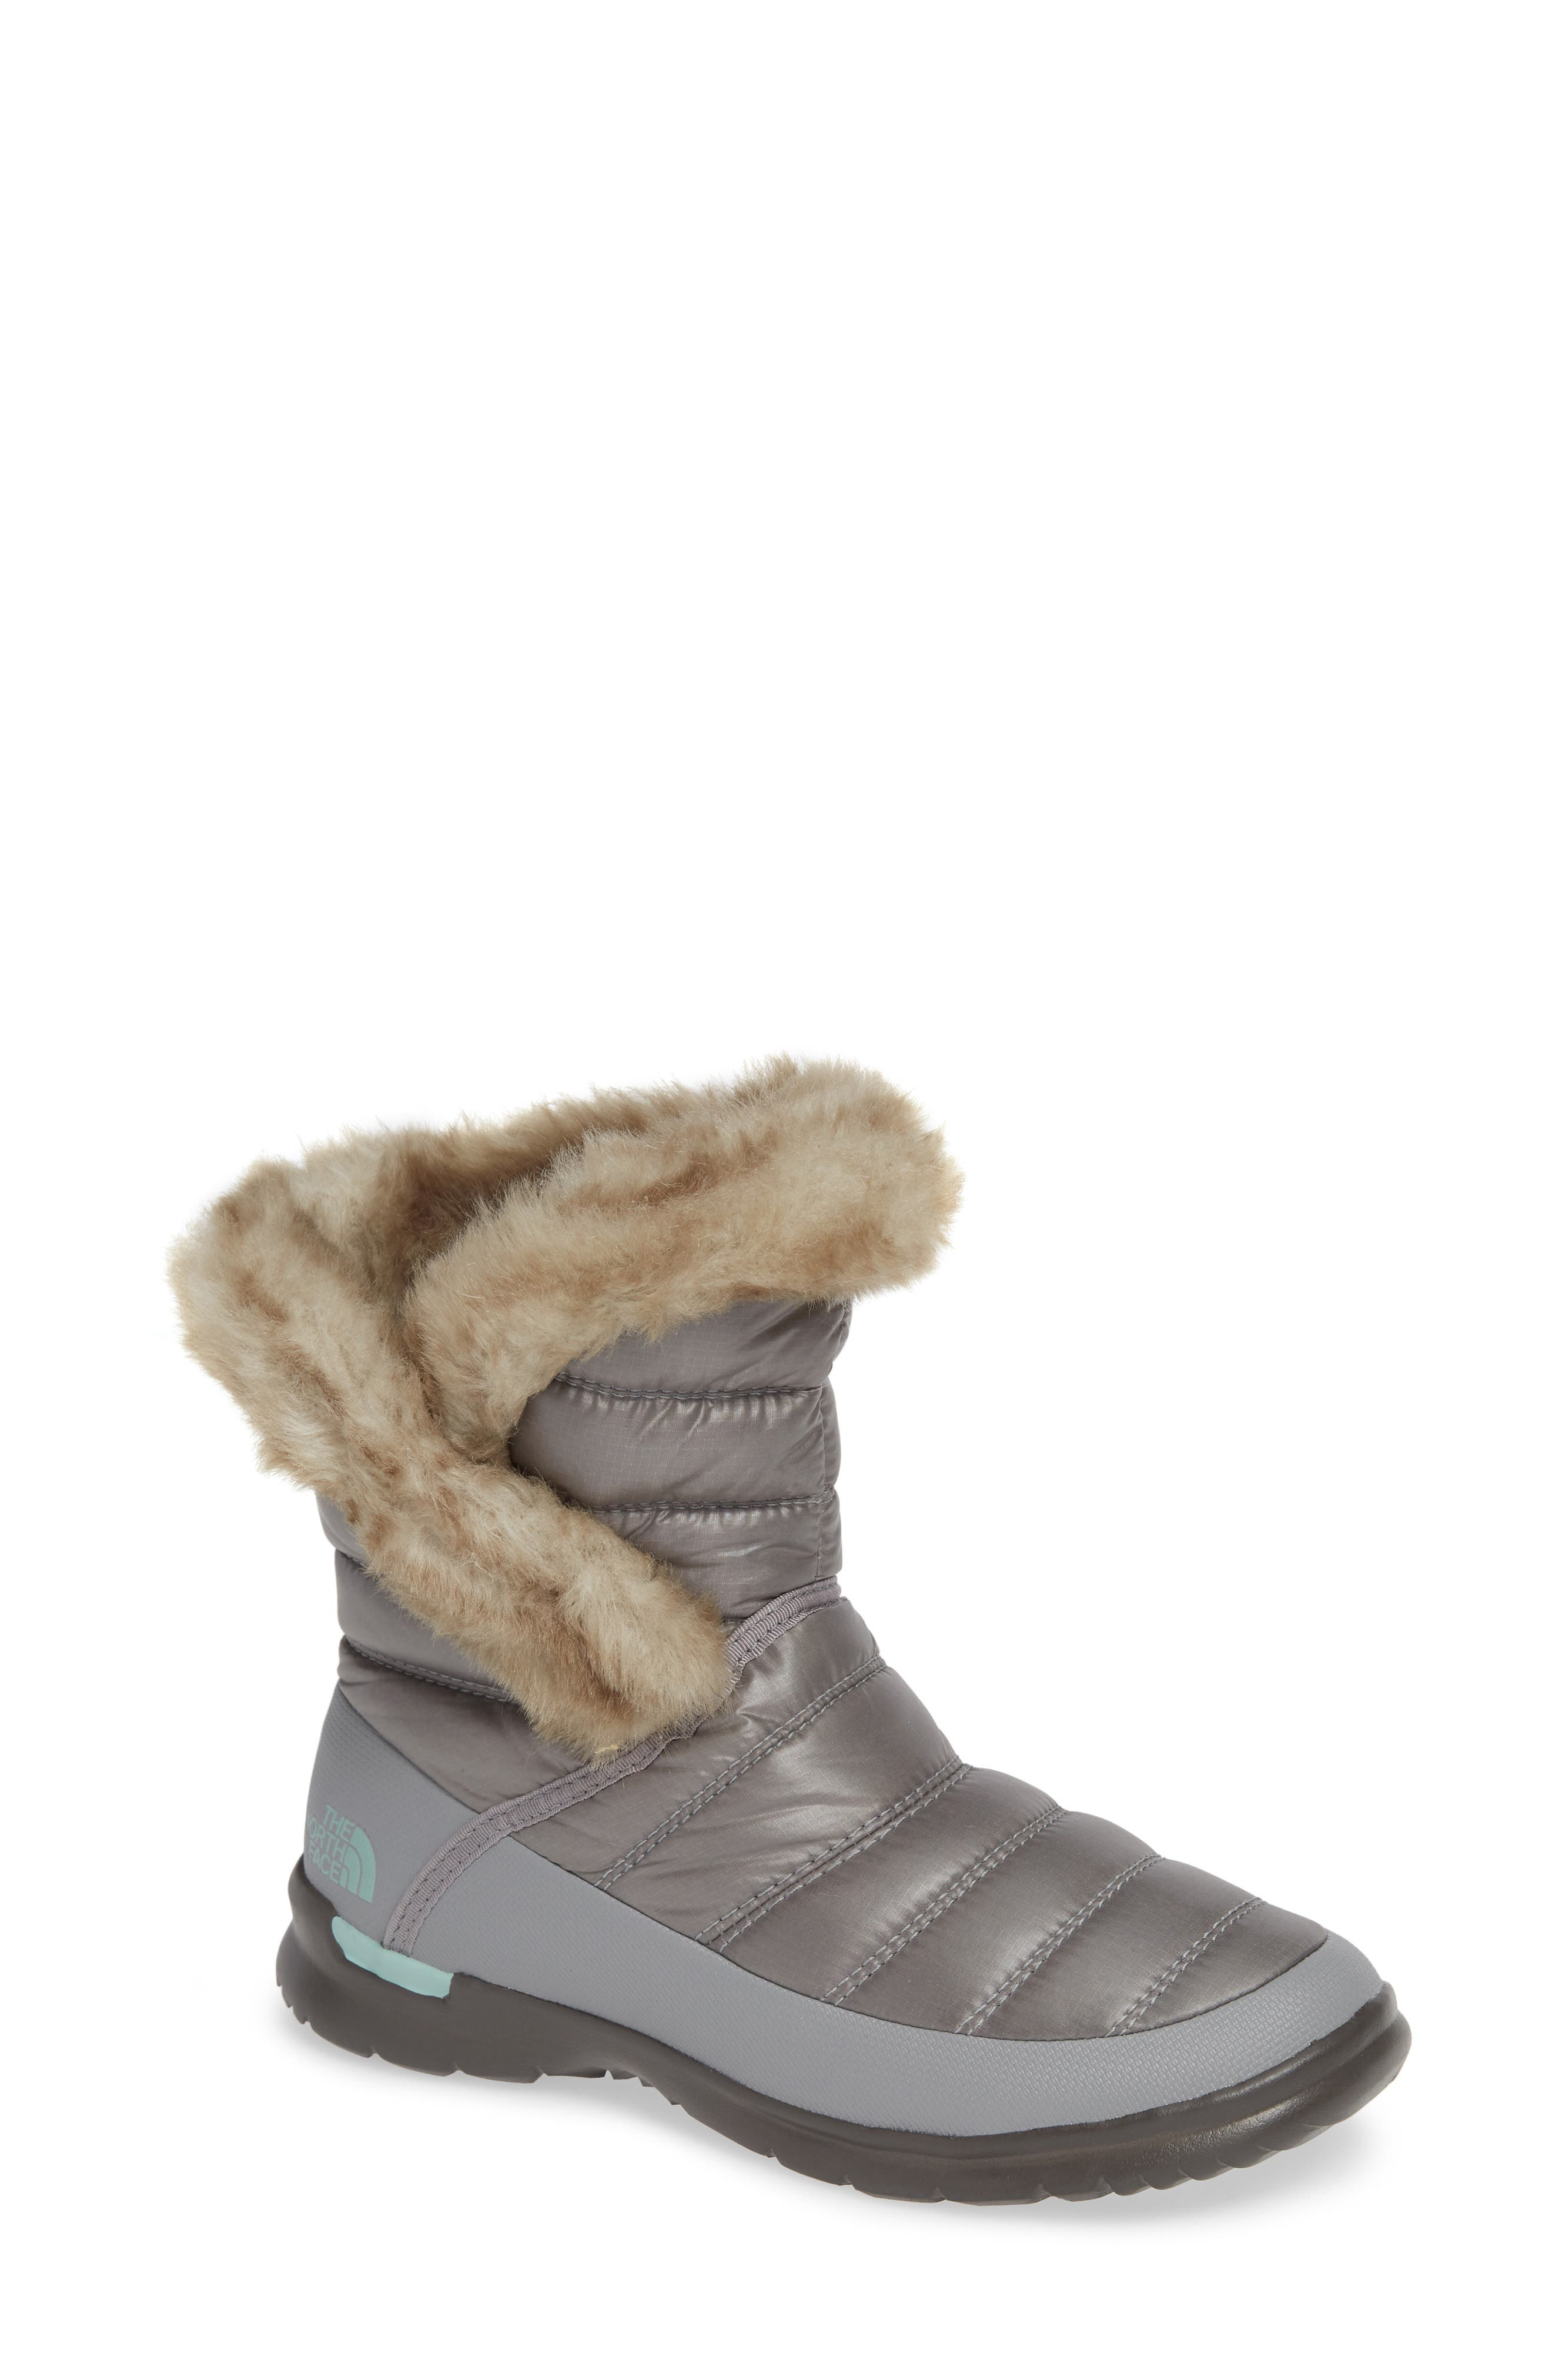 Microbaffle Waterproof ThermoBall<sup>®</sup> Insulated Winter Boot,                         Main,                         color, SHINY FROST GREY/ BLUE HAZE